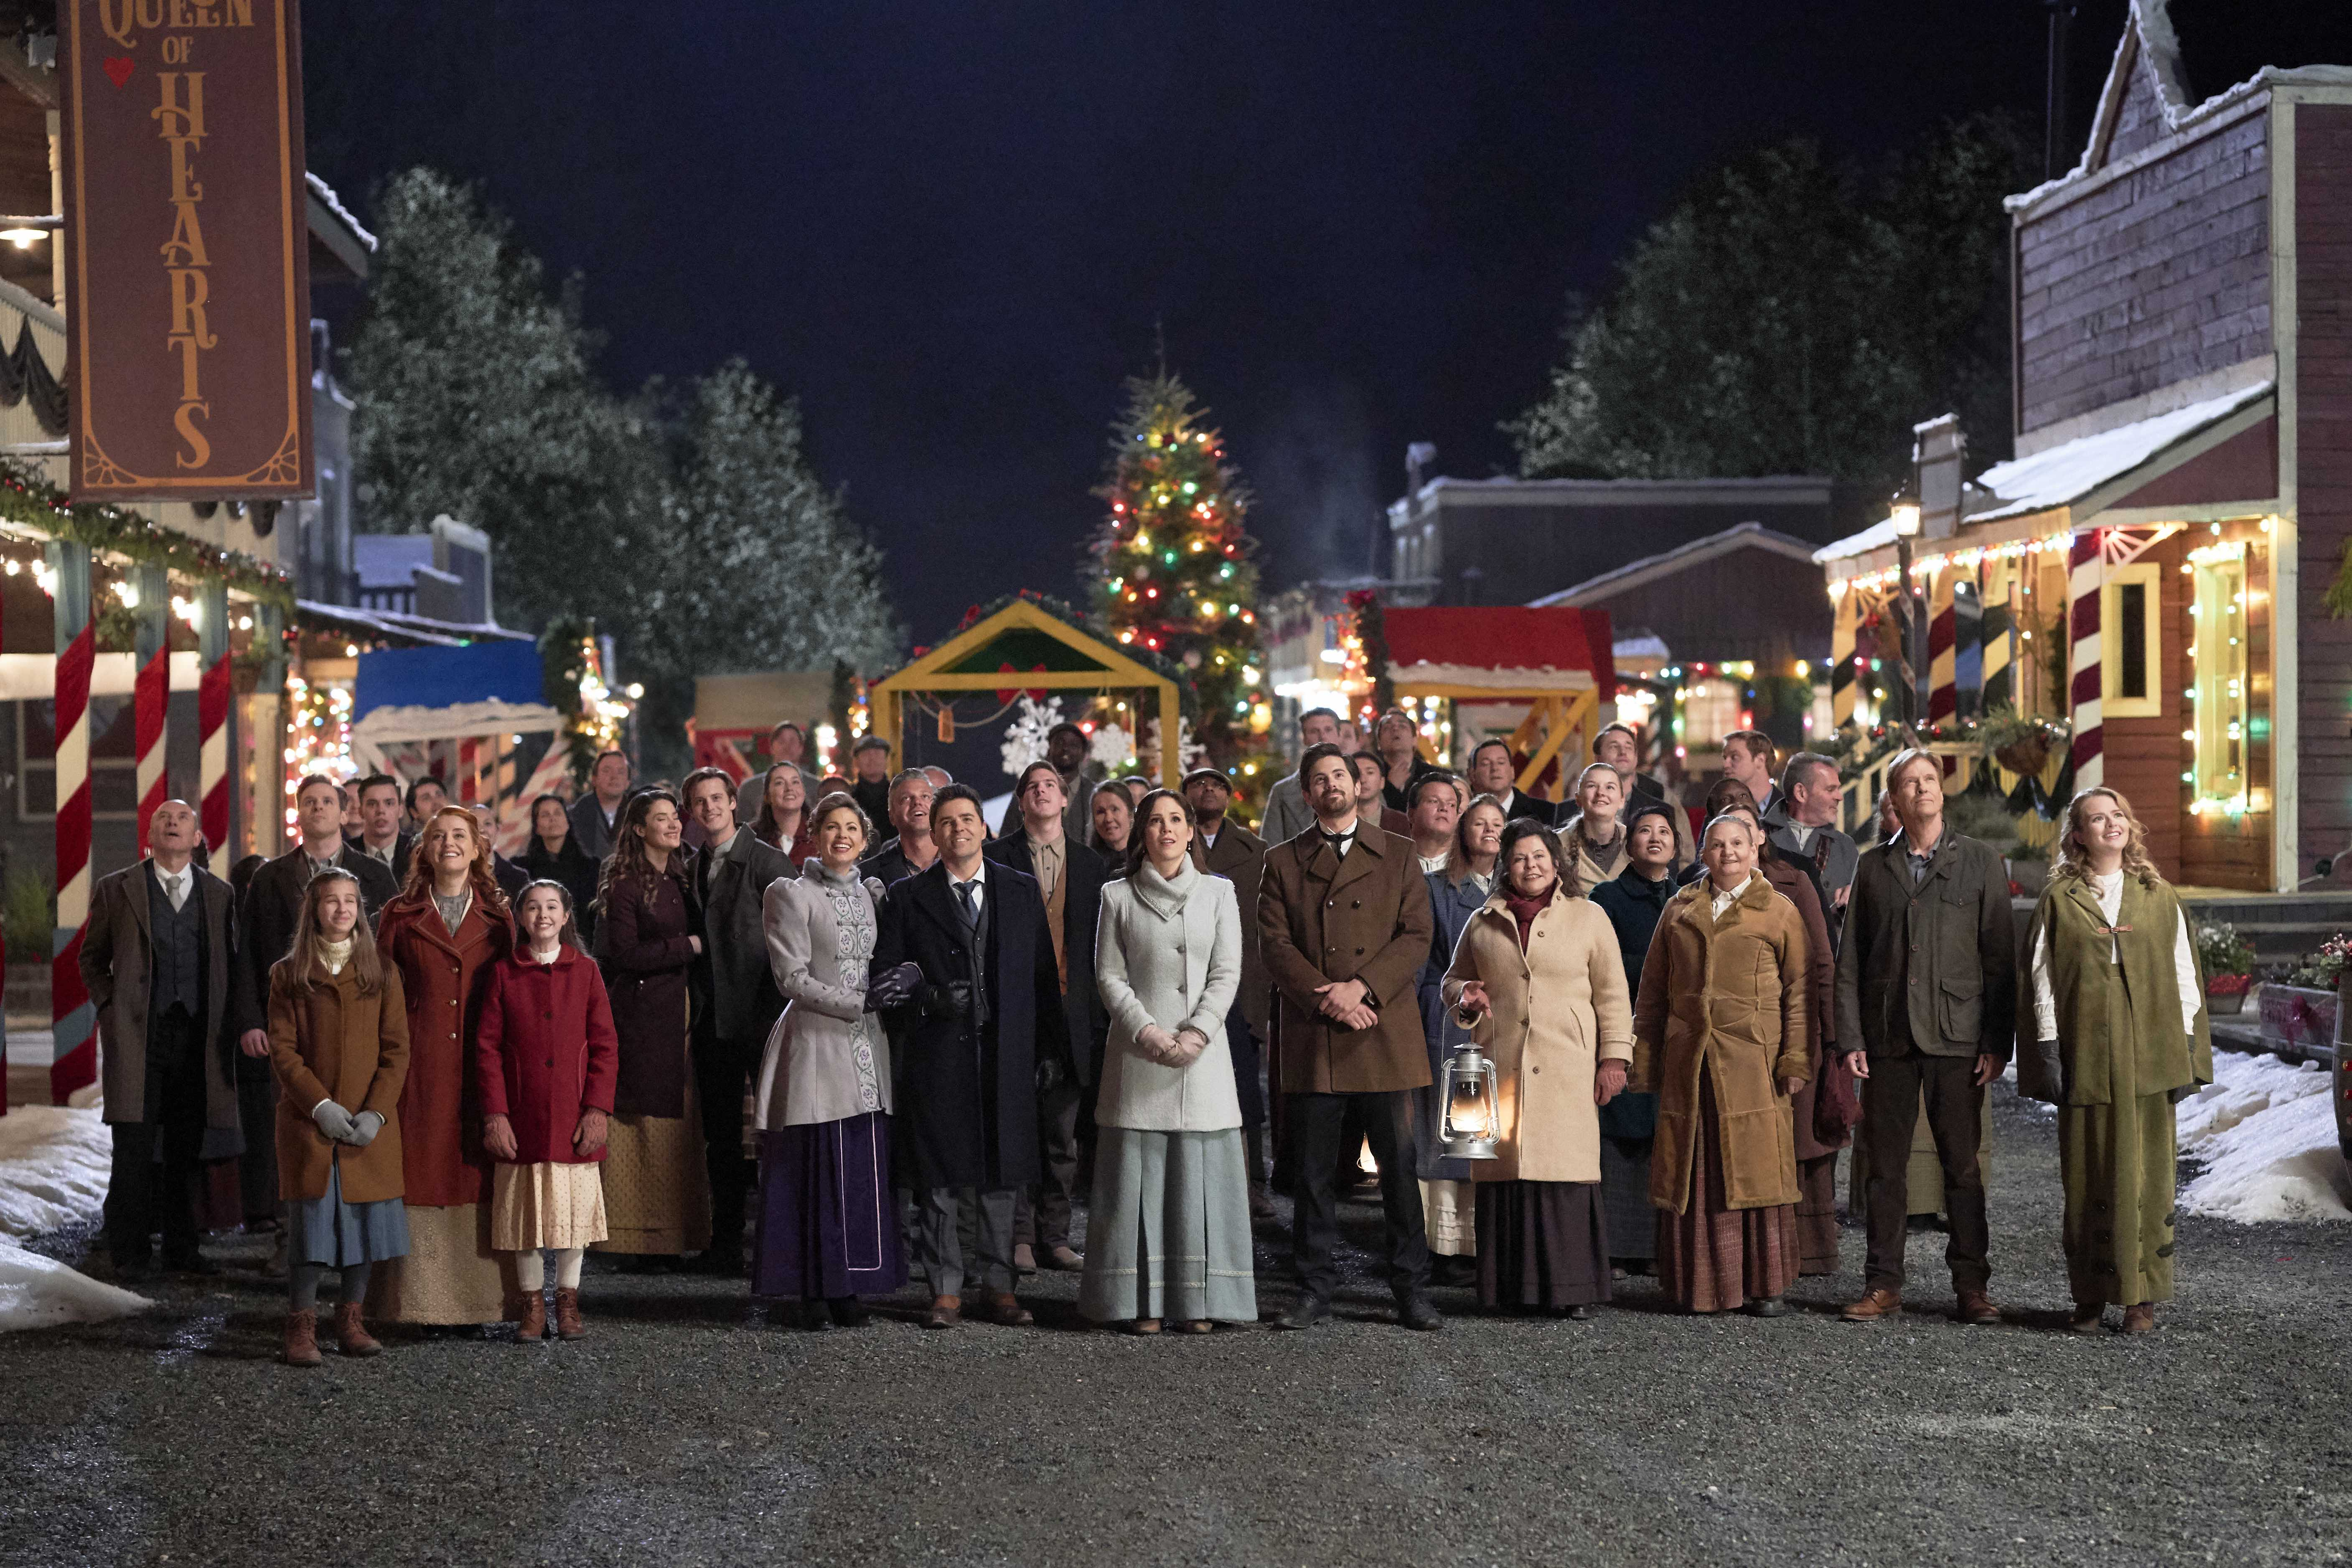 When Calls The Heart Christmas Episode 2020 Hallmark Confirms 'When Calls the Heart' Christmas Special Is Not